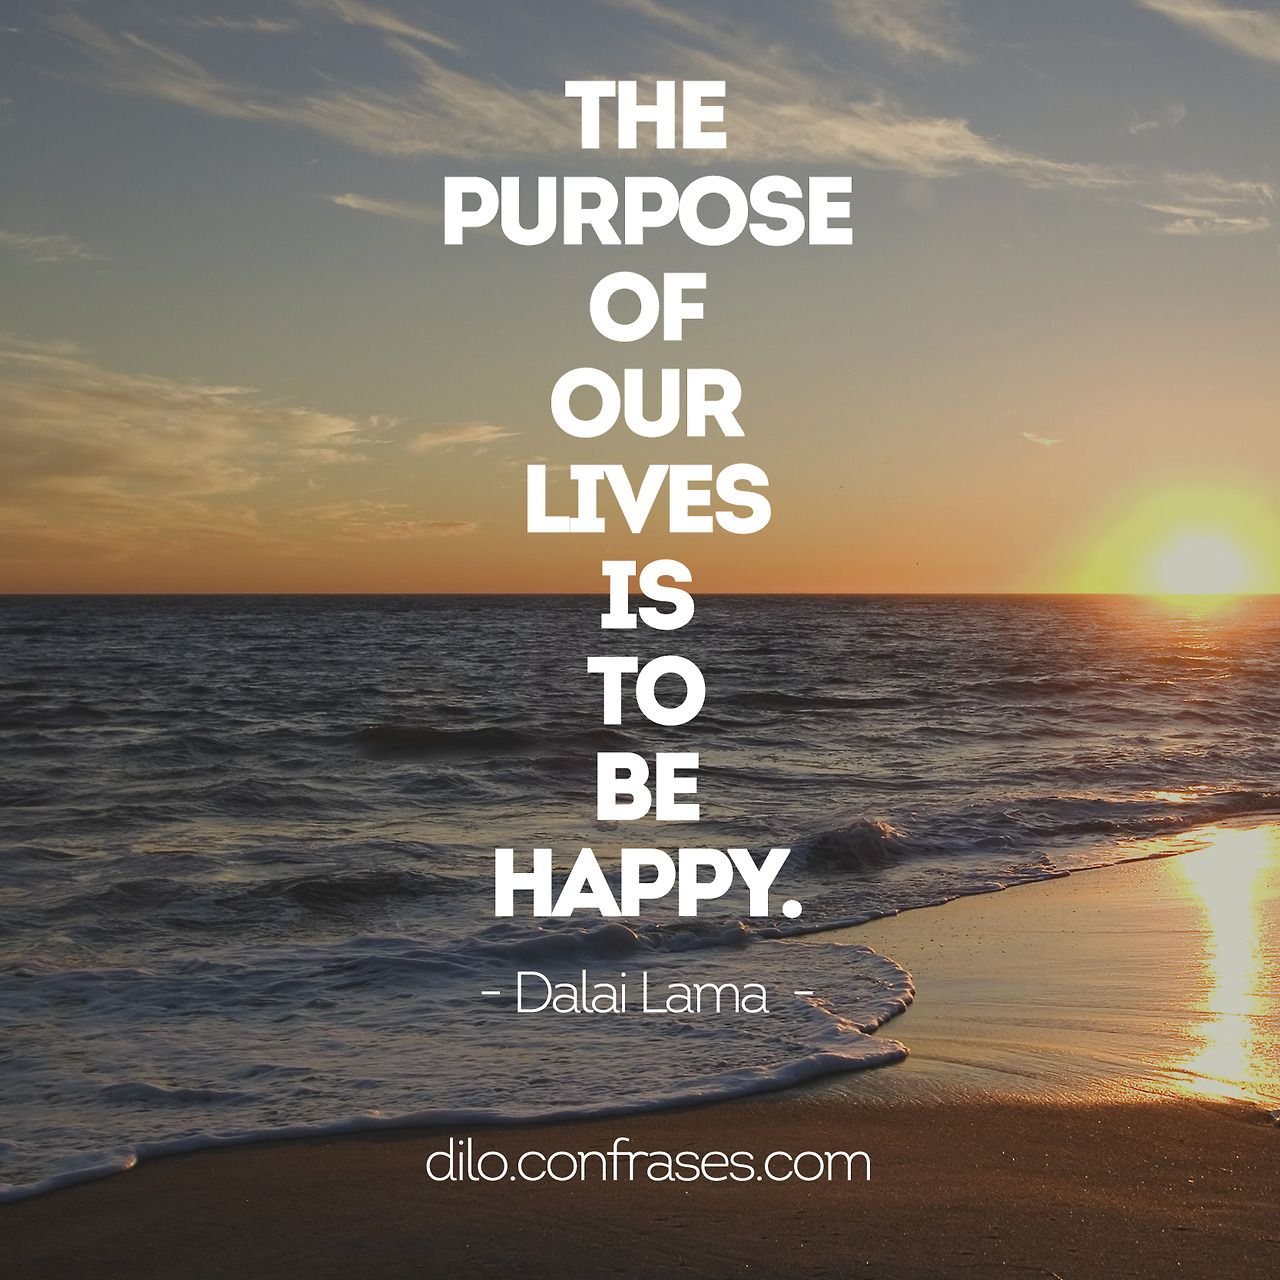 The Purpose Of Our Lives Is To Be Happy Dalai Lama Frases Frase Quote Quotes Inglés English Wise Frases Motivadoras Frases Inspiradoras Budismo Frases